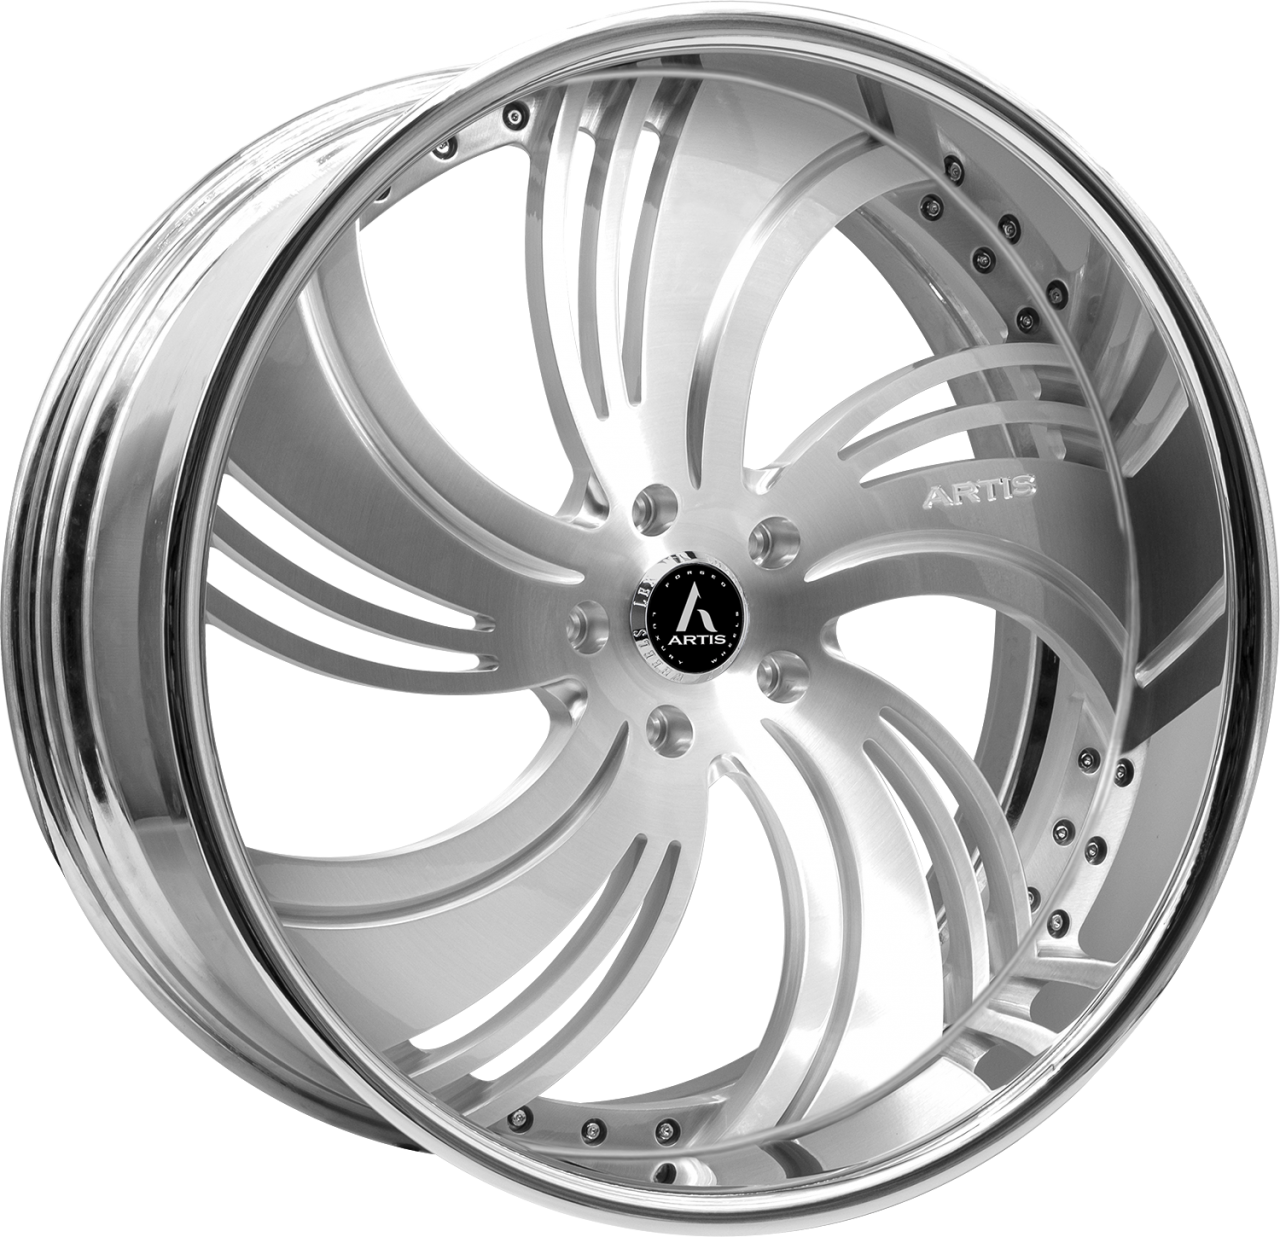 Artis Forged Avenue-M wheel with Brushed finish